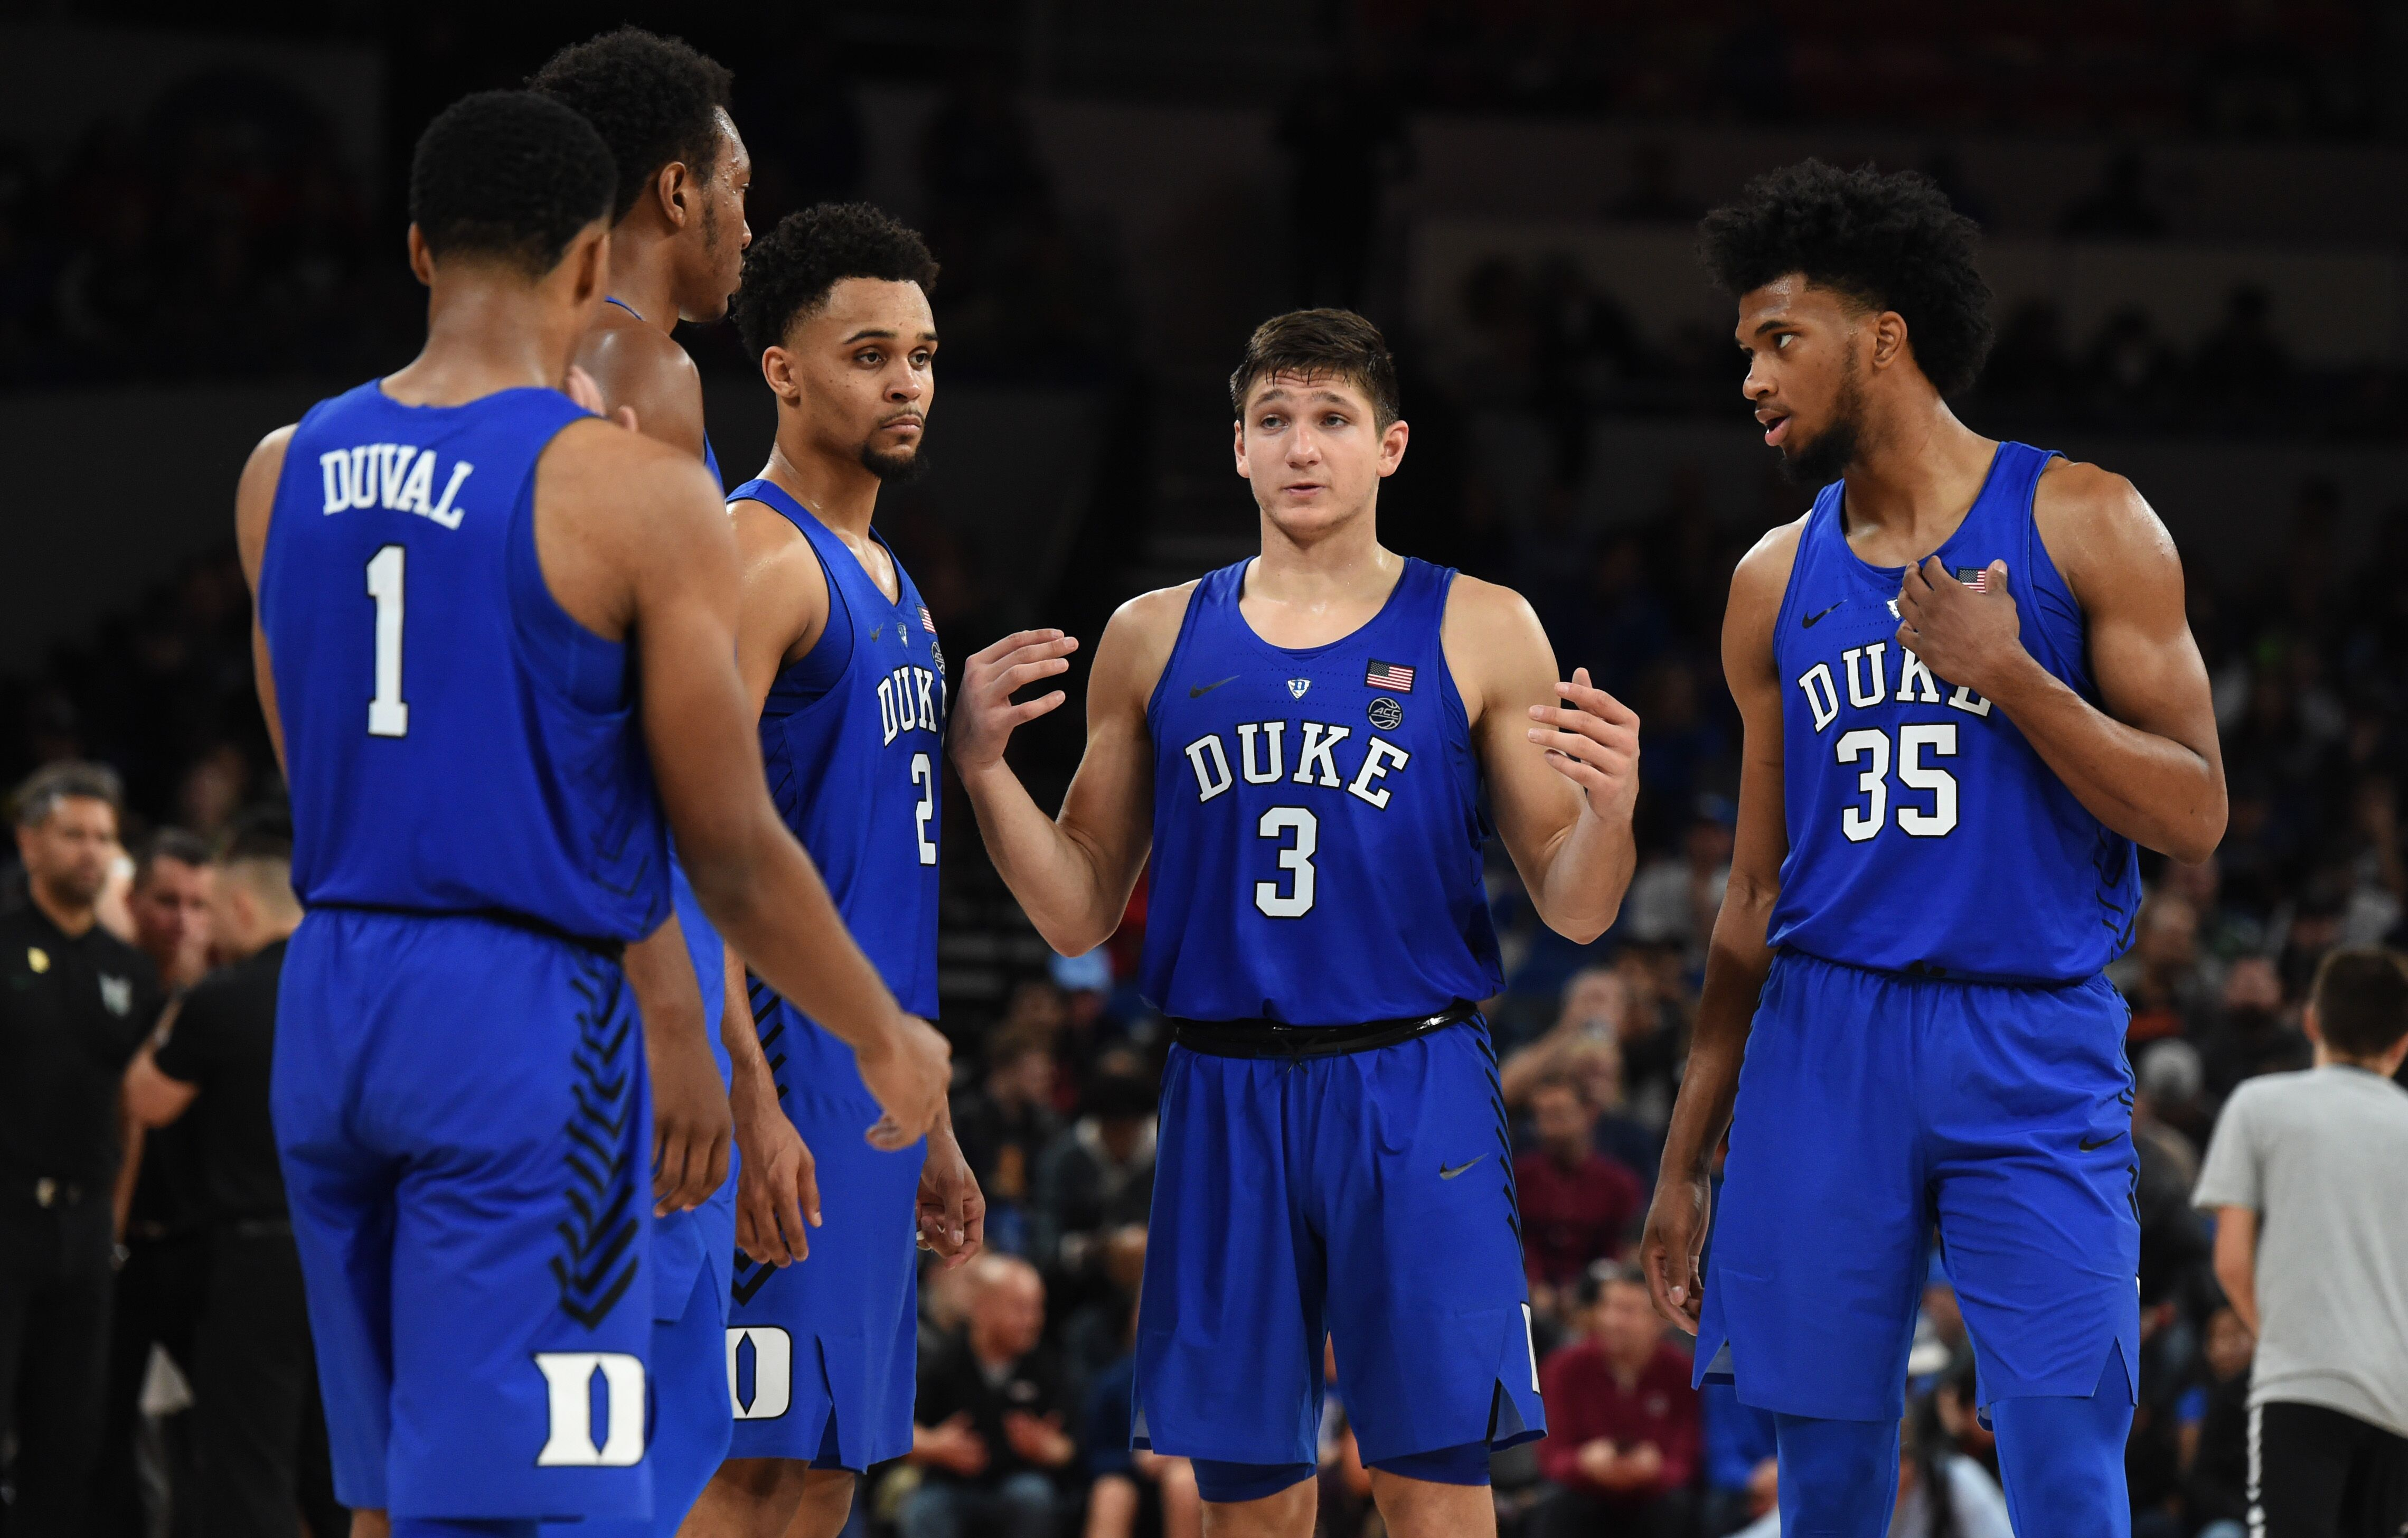 Duke Basketball: Biggest weakness for Blue Devils ...